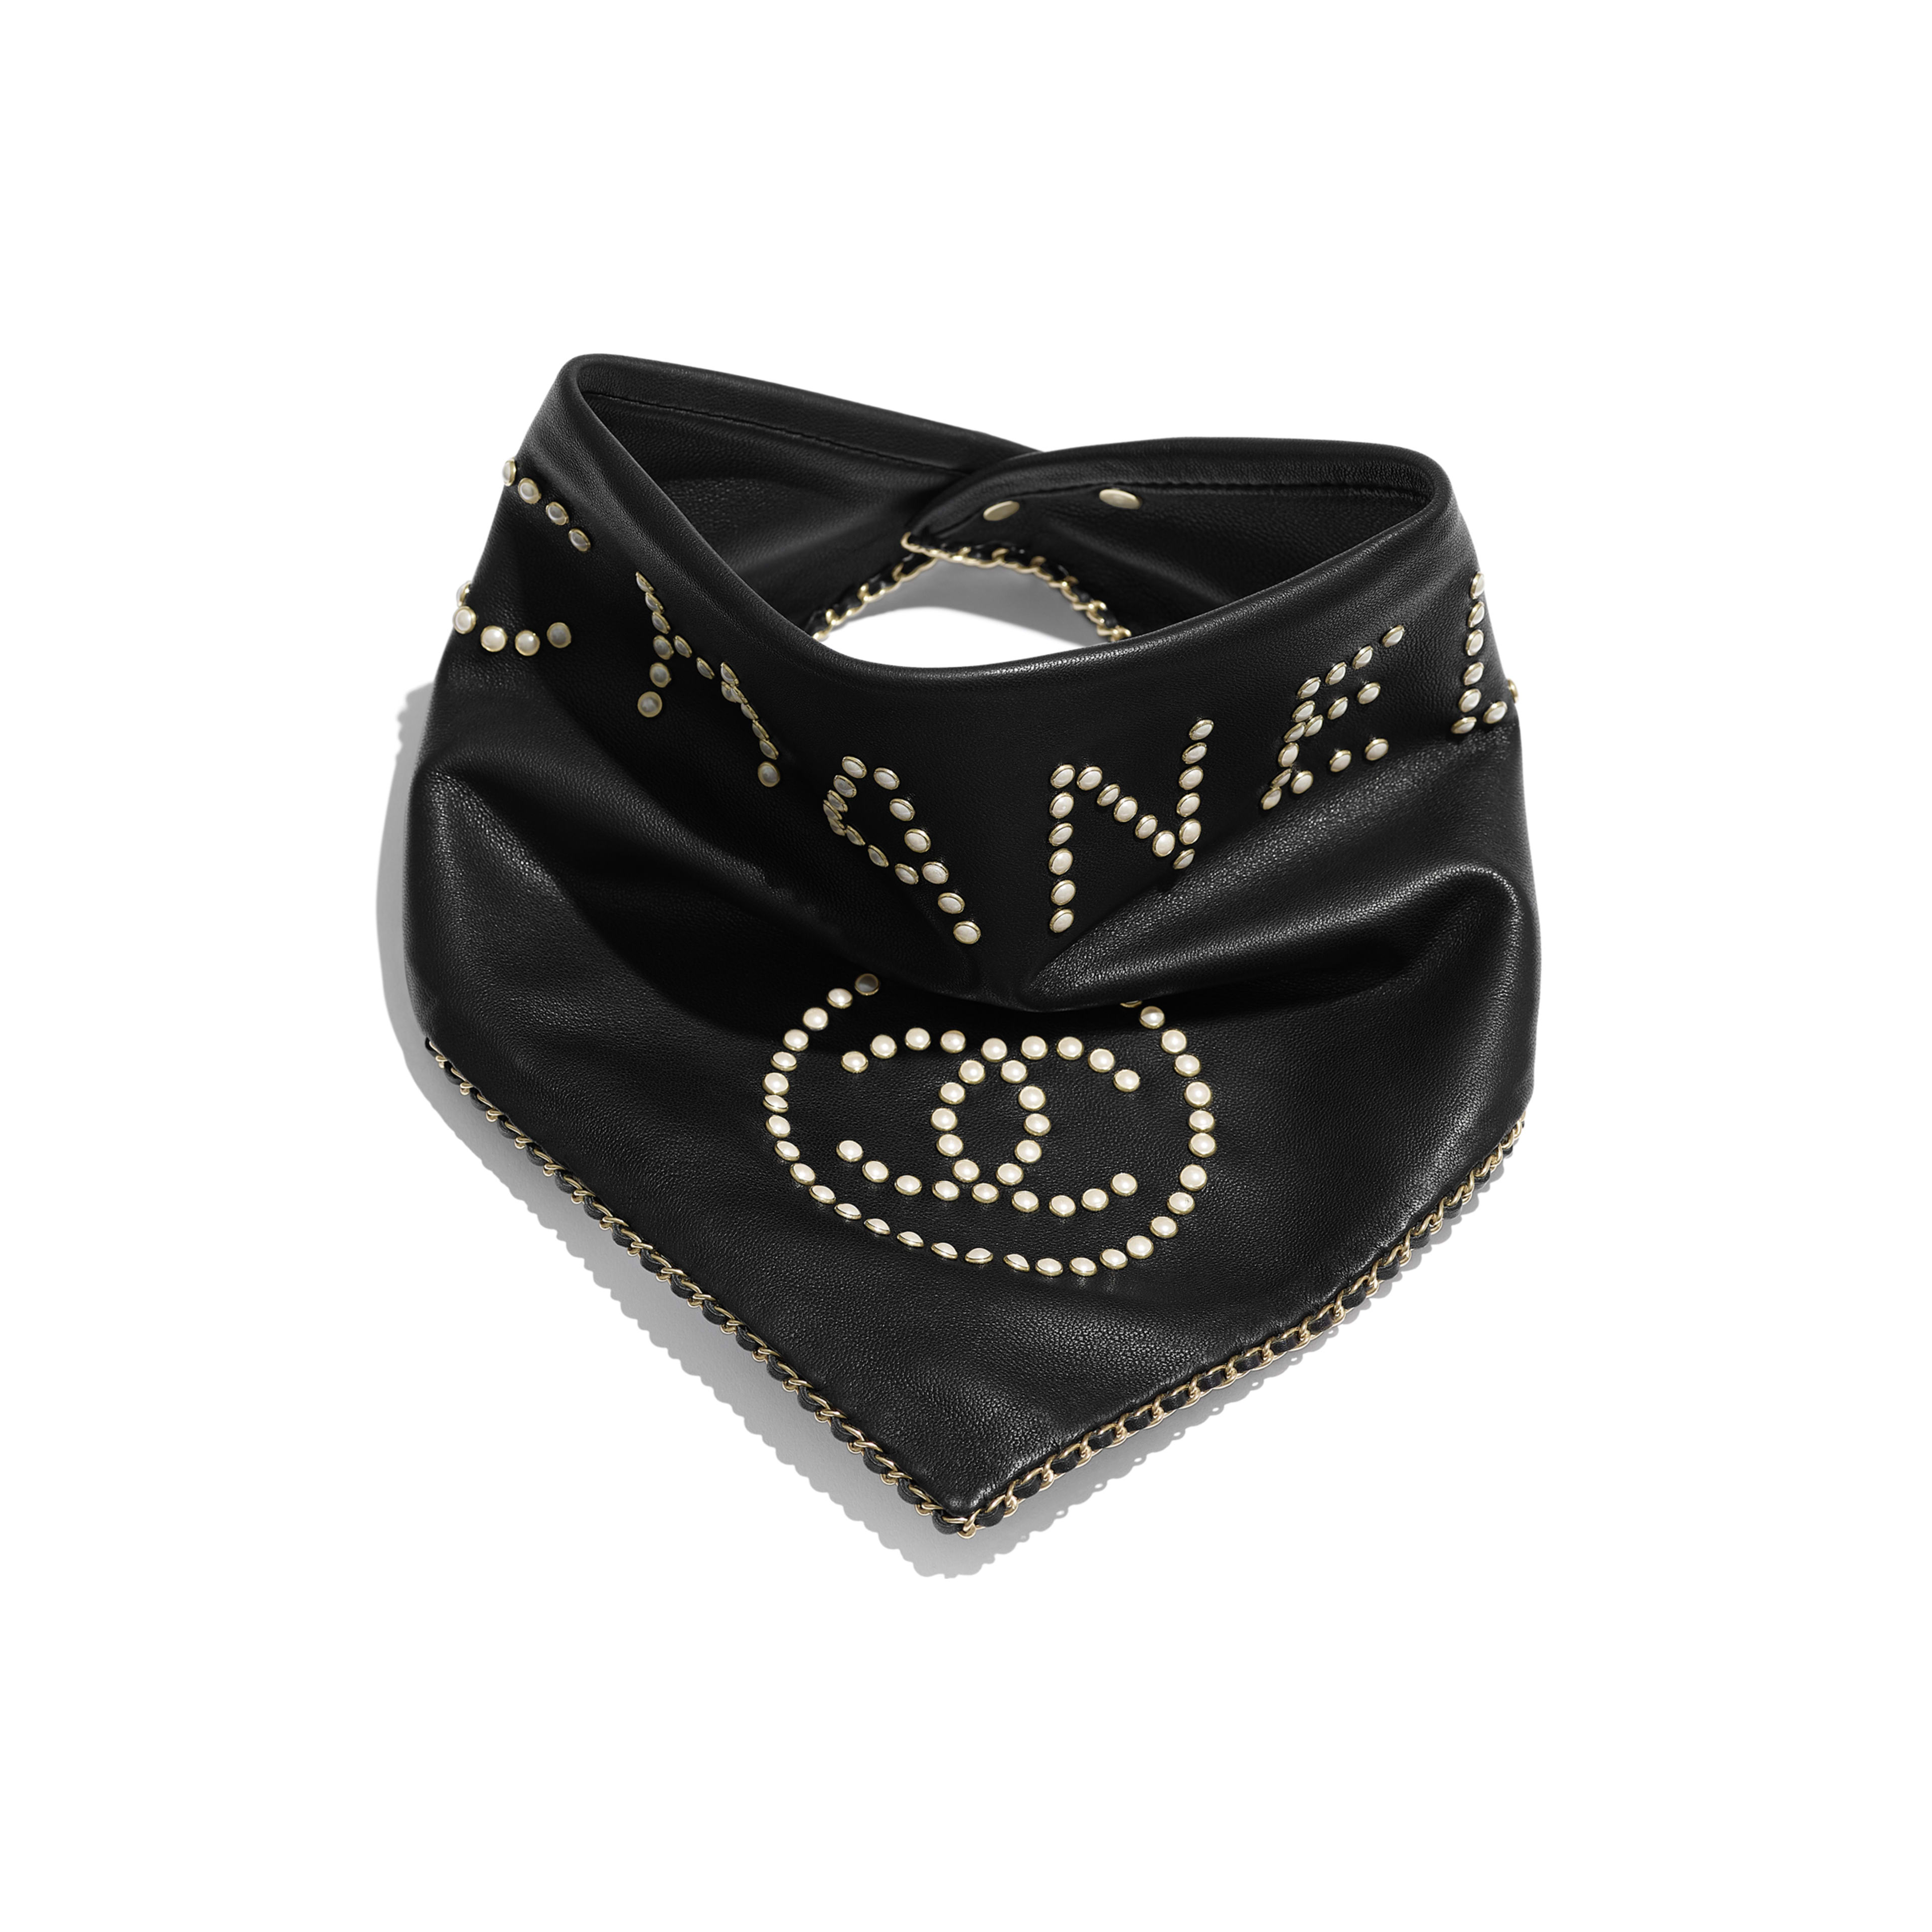 Bandana - Black & Pearly White - Glass Pearls & Gold-Tone Metal - Default view - see full sized version